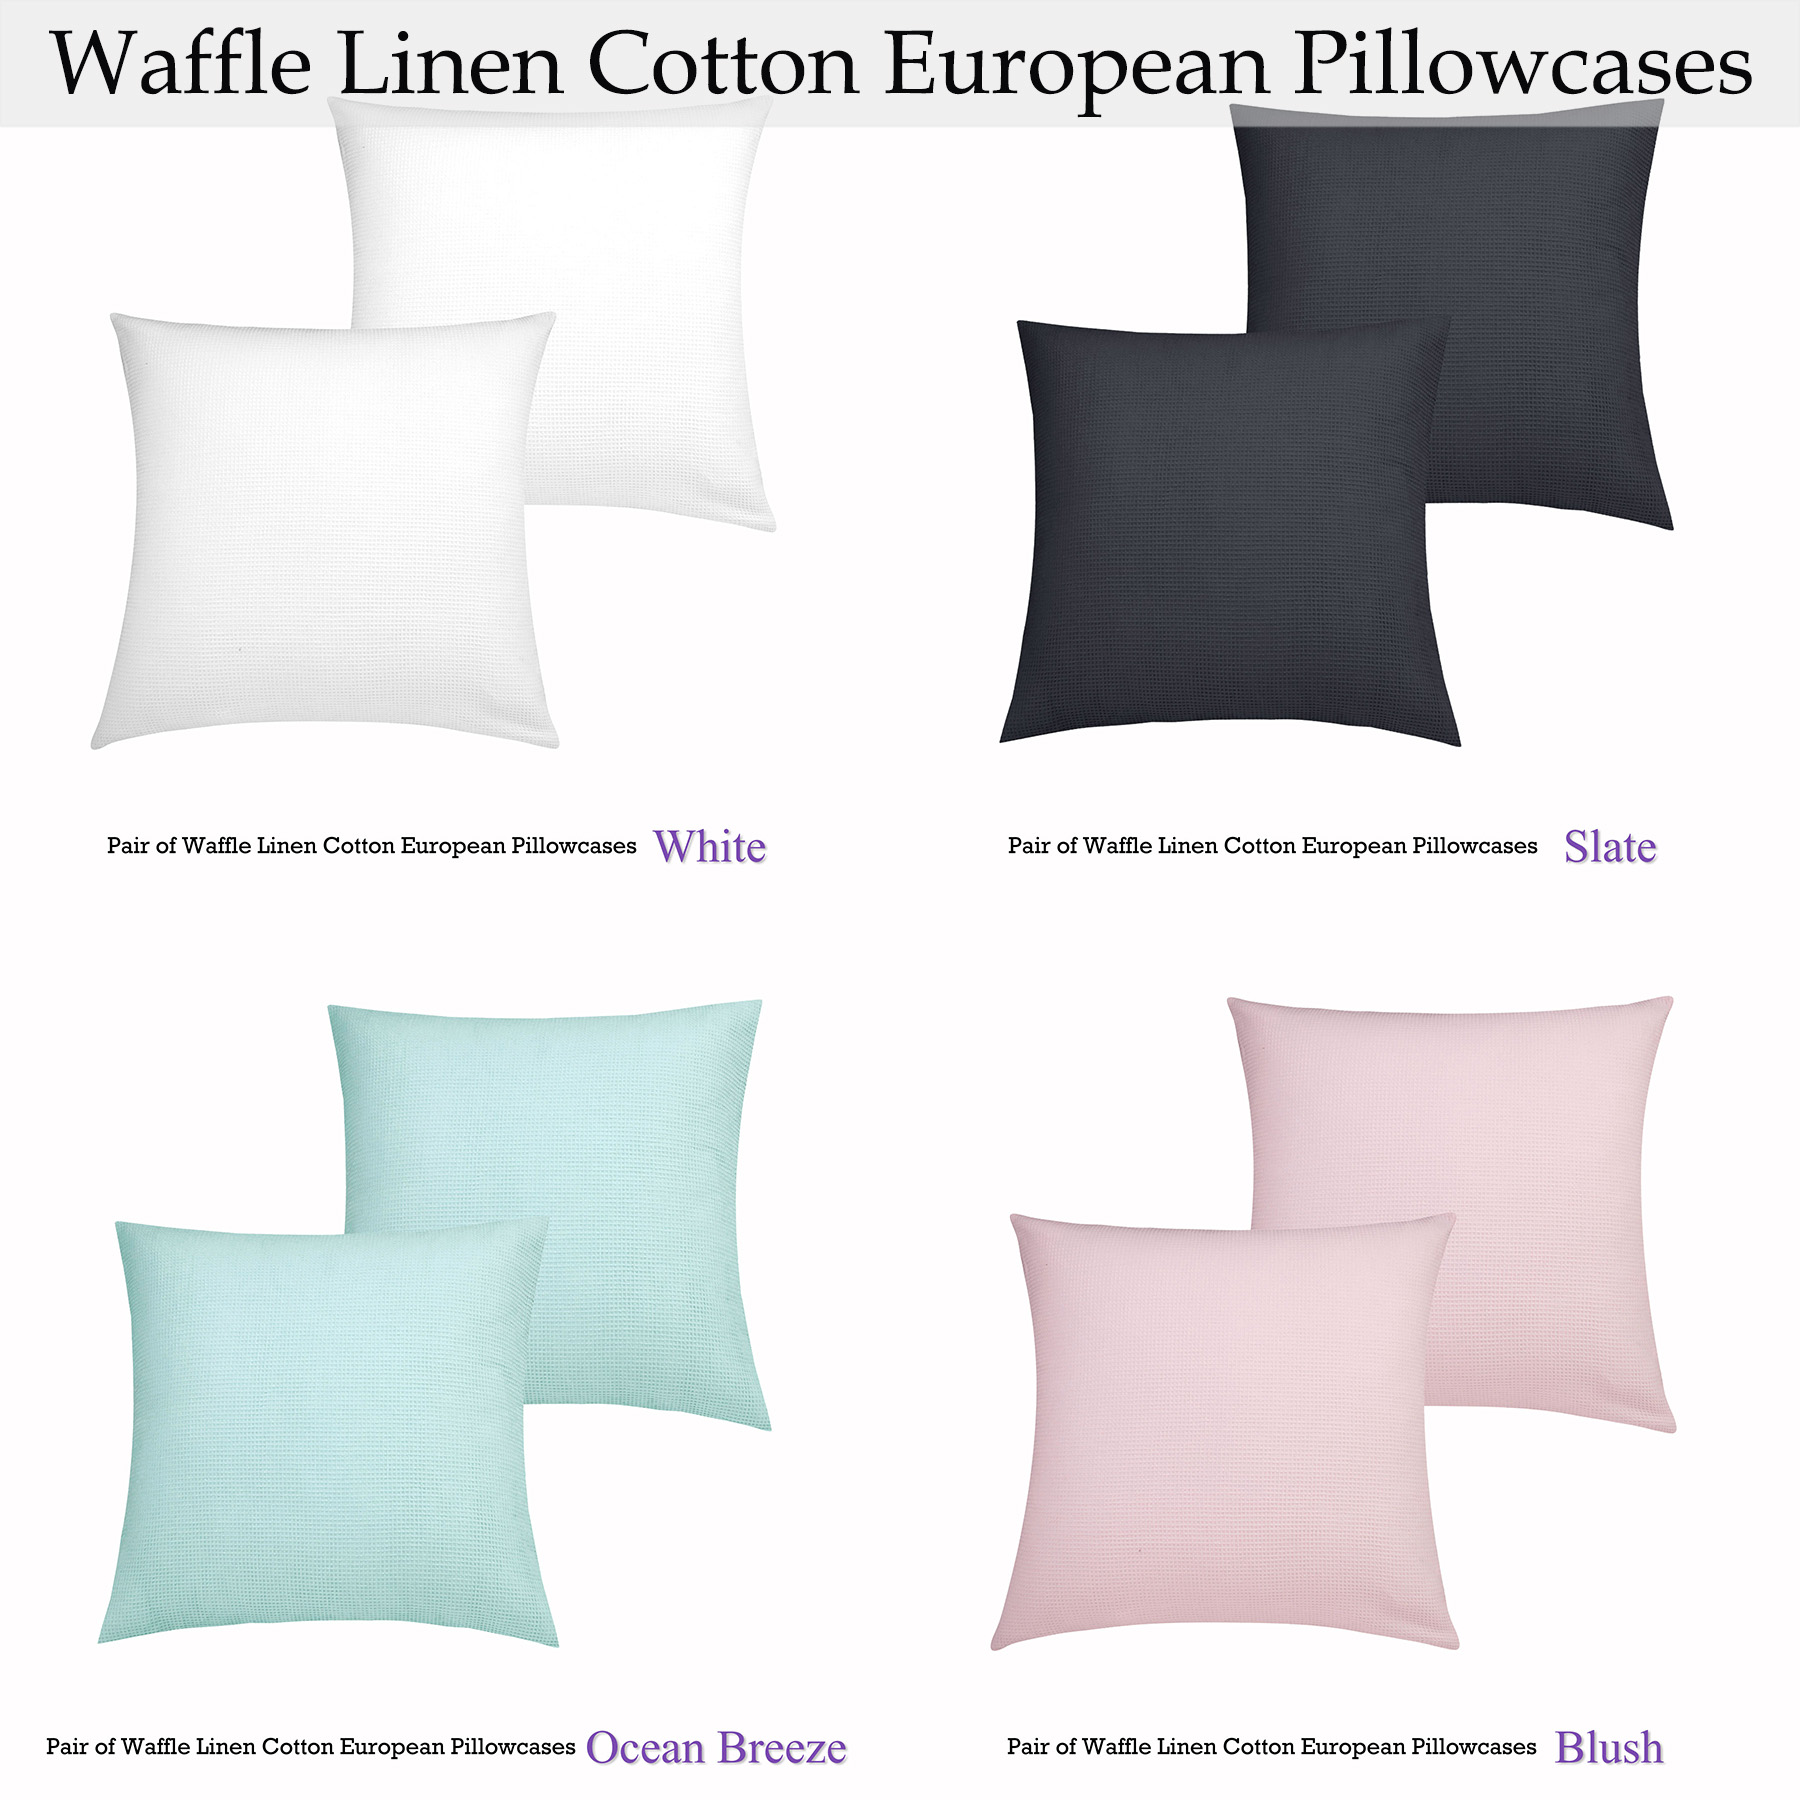 Pair of Waffle Cotton Linen European Pillowcases by Accessorize